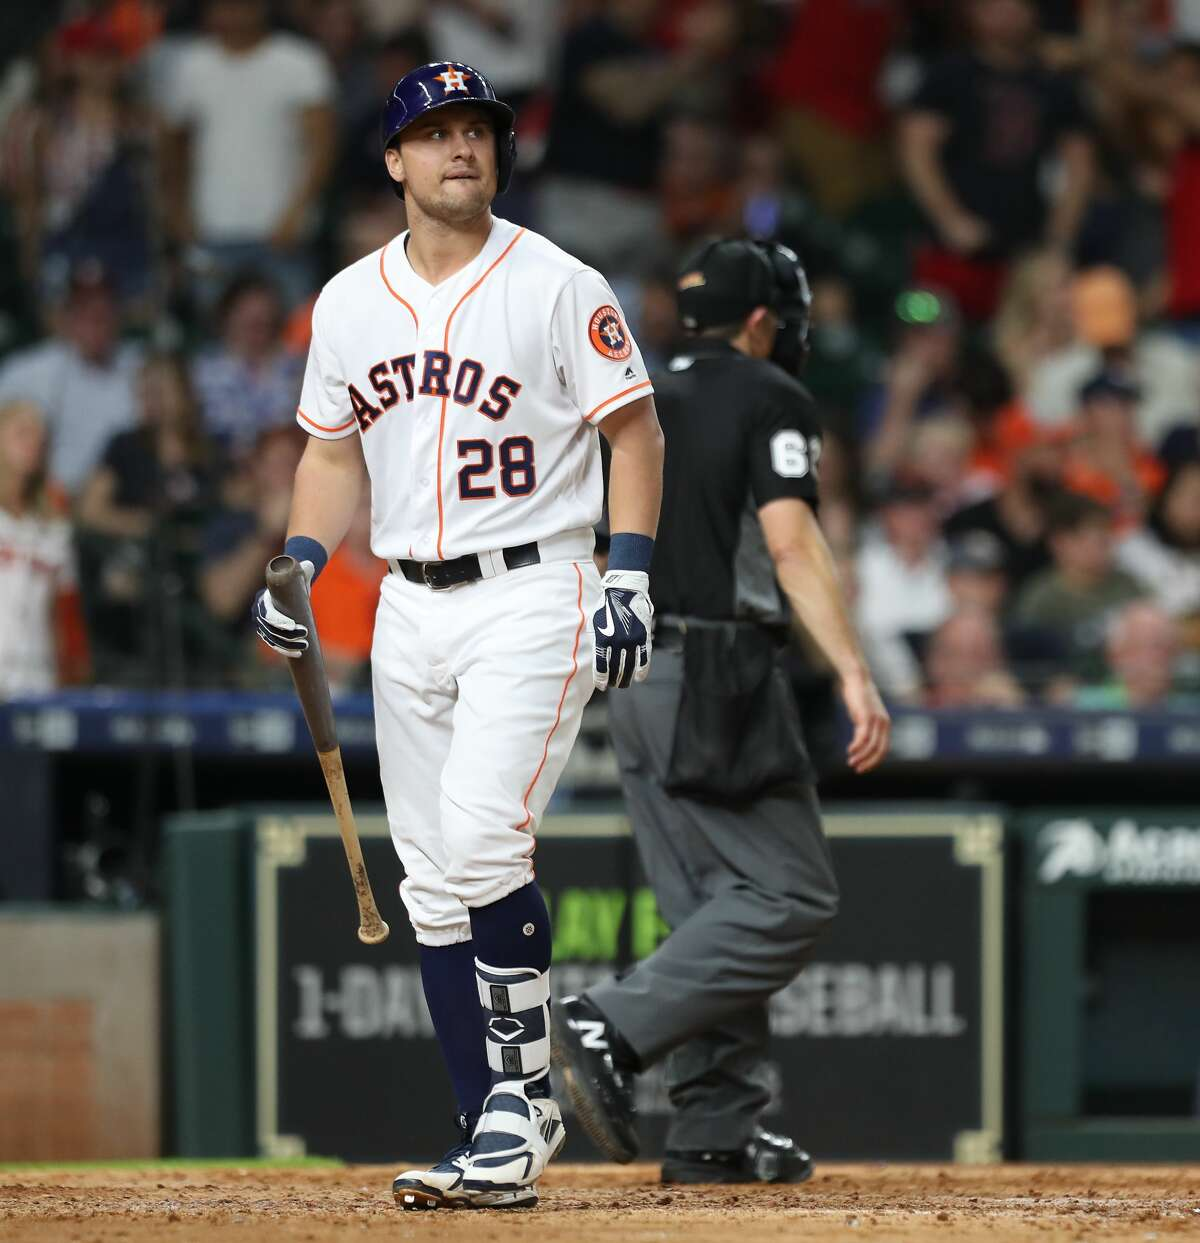 Houston Astros third baseman J.D. Davis (28) reacts to making the last out during the 9th inning of an MLB baseball game at Minute Maid Park Saturday, June 2, 2018, in Houston. ( Steve Gonzales / Houston Chronicle )